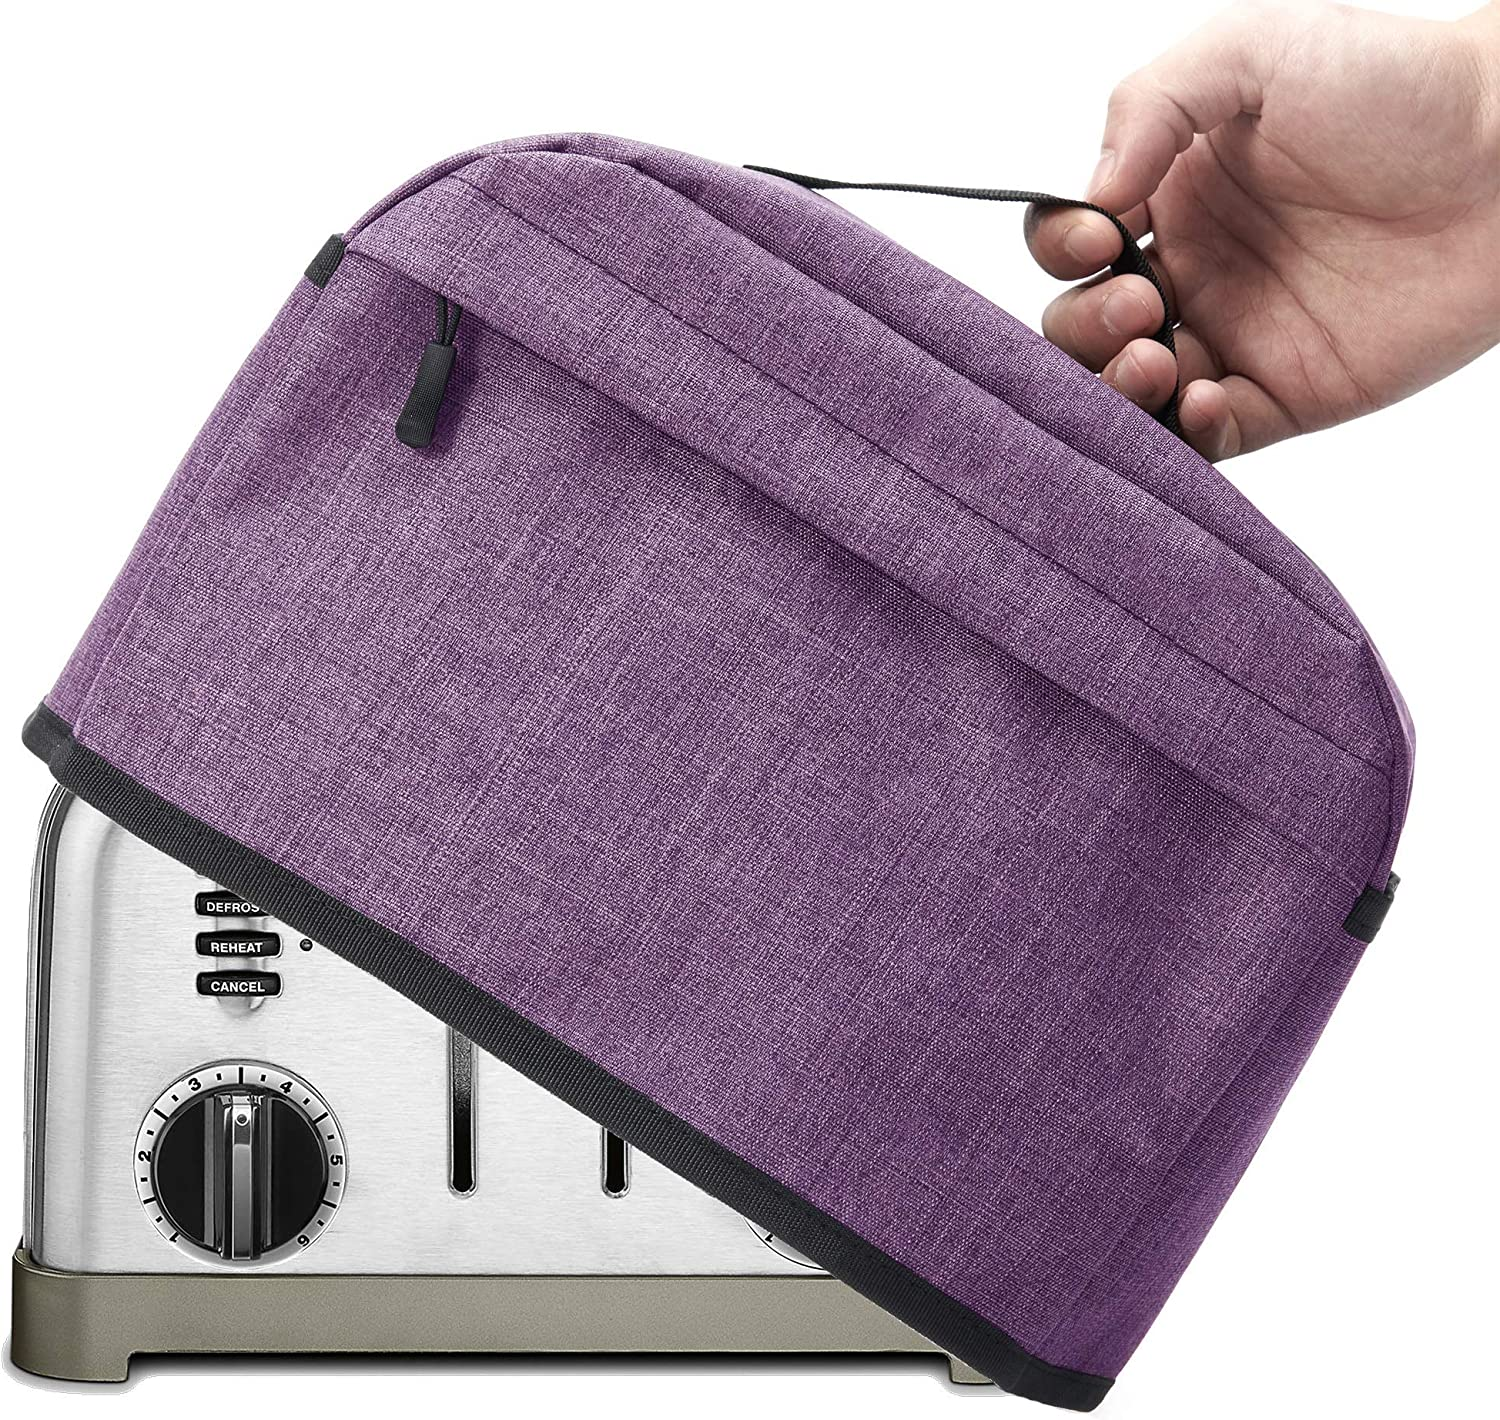 VOSDANS 4 Slice Toaster Cover with Zipper & Open Pockets Kitchen Small Appliance Cover with Handle, Dust and Fingerprint Protection, Machine Washable, Light Purple (Patent Design)